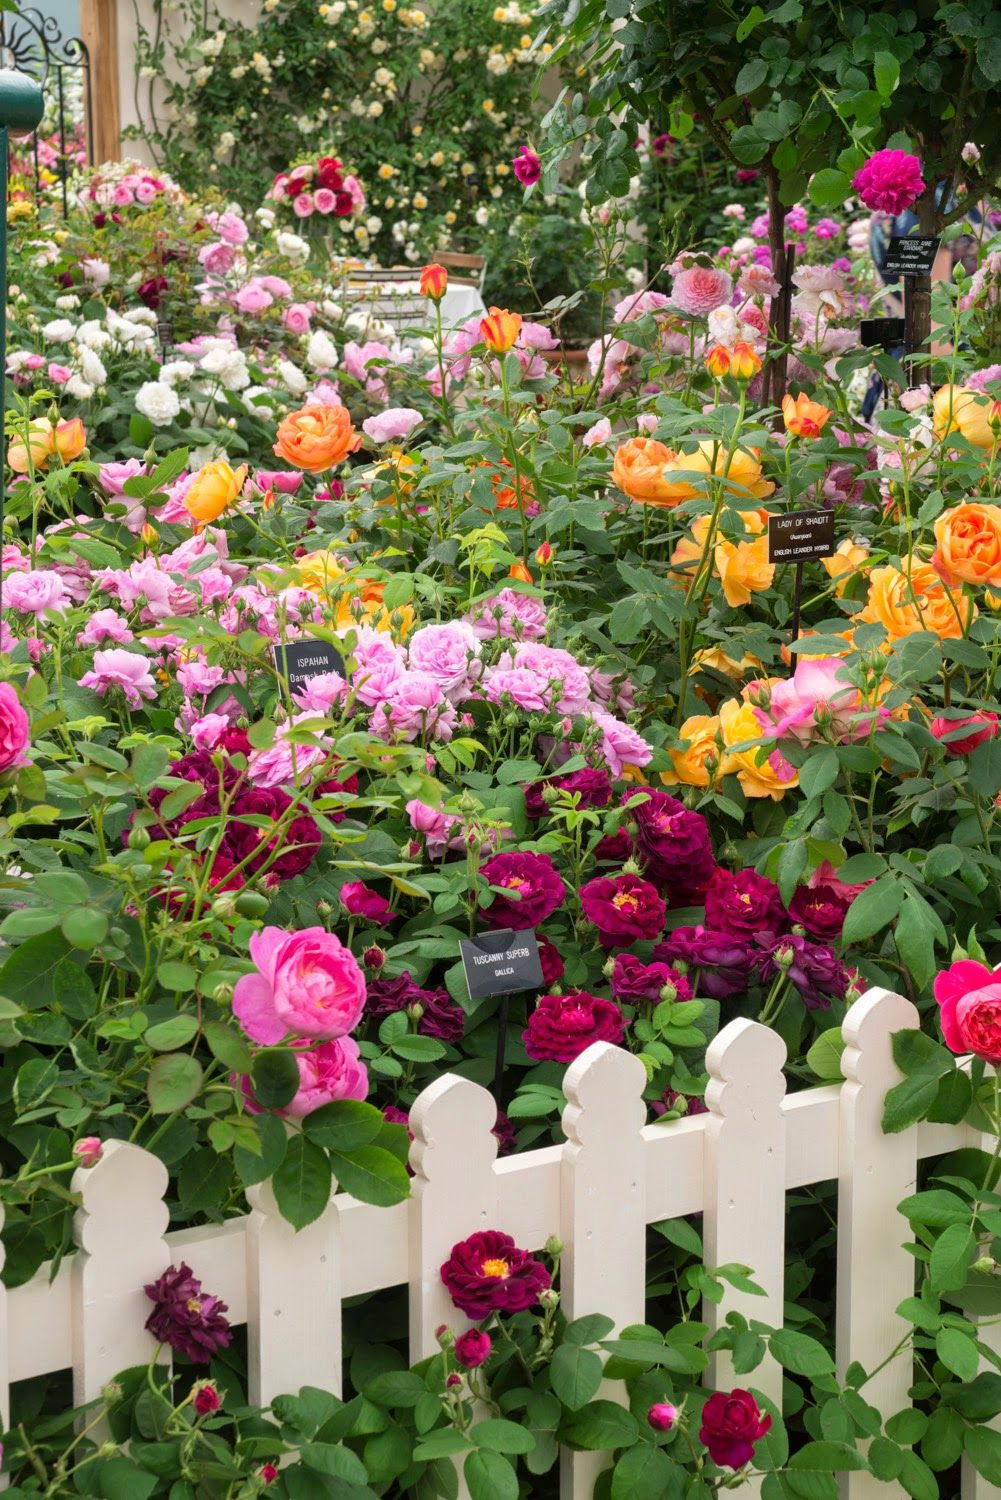 25 ideas for decorating your garden fence diy roses pinterest flower garden fence ideas build your own garden fence garden fencing ideas do yourself easy garden fence ideas how to build a garden fence to keep izmirmasajfo